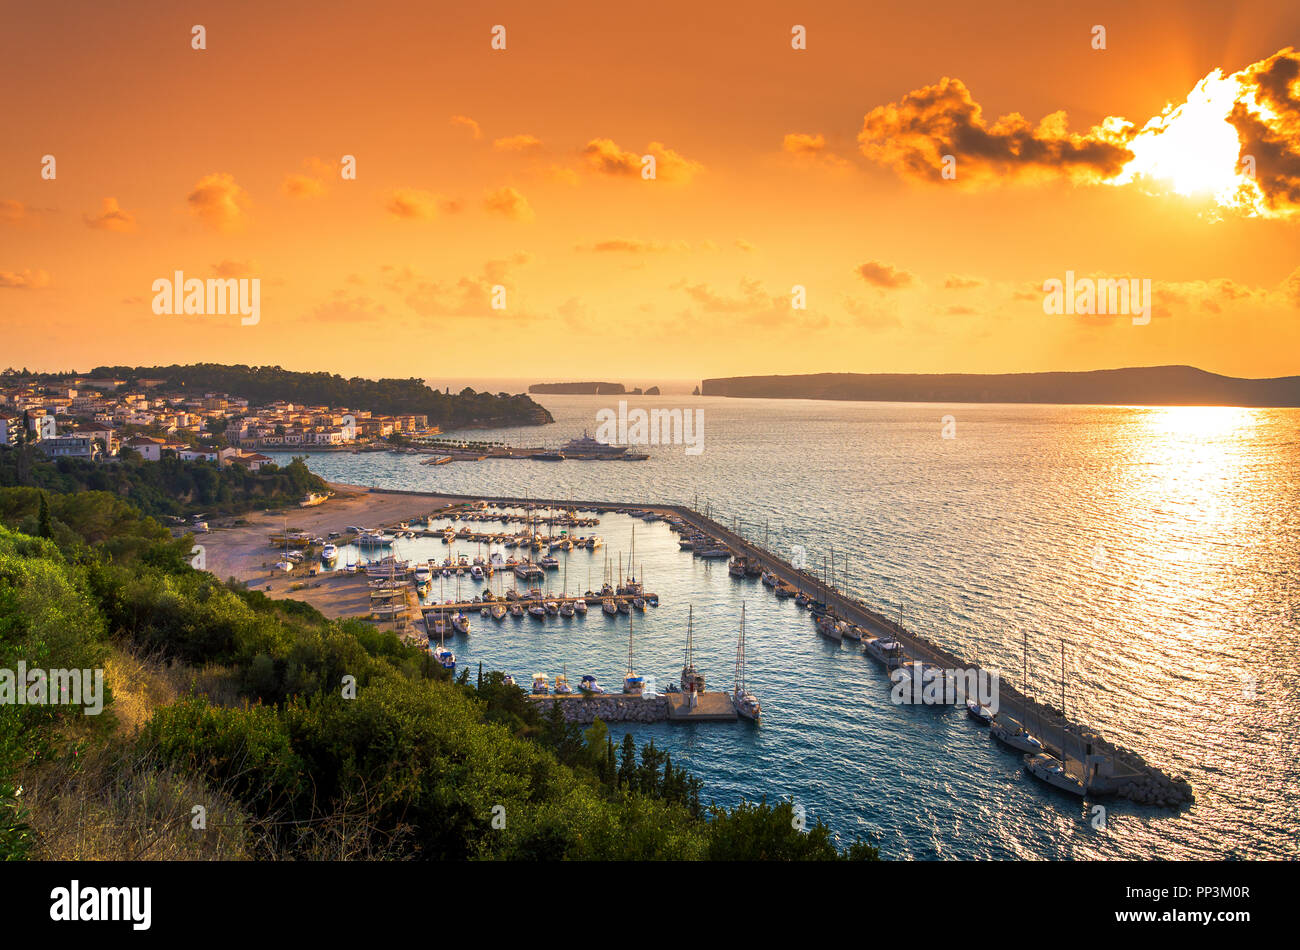 View of the picturesque coastal town of Pylos, Peloponnese, Greece. - Stock Image